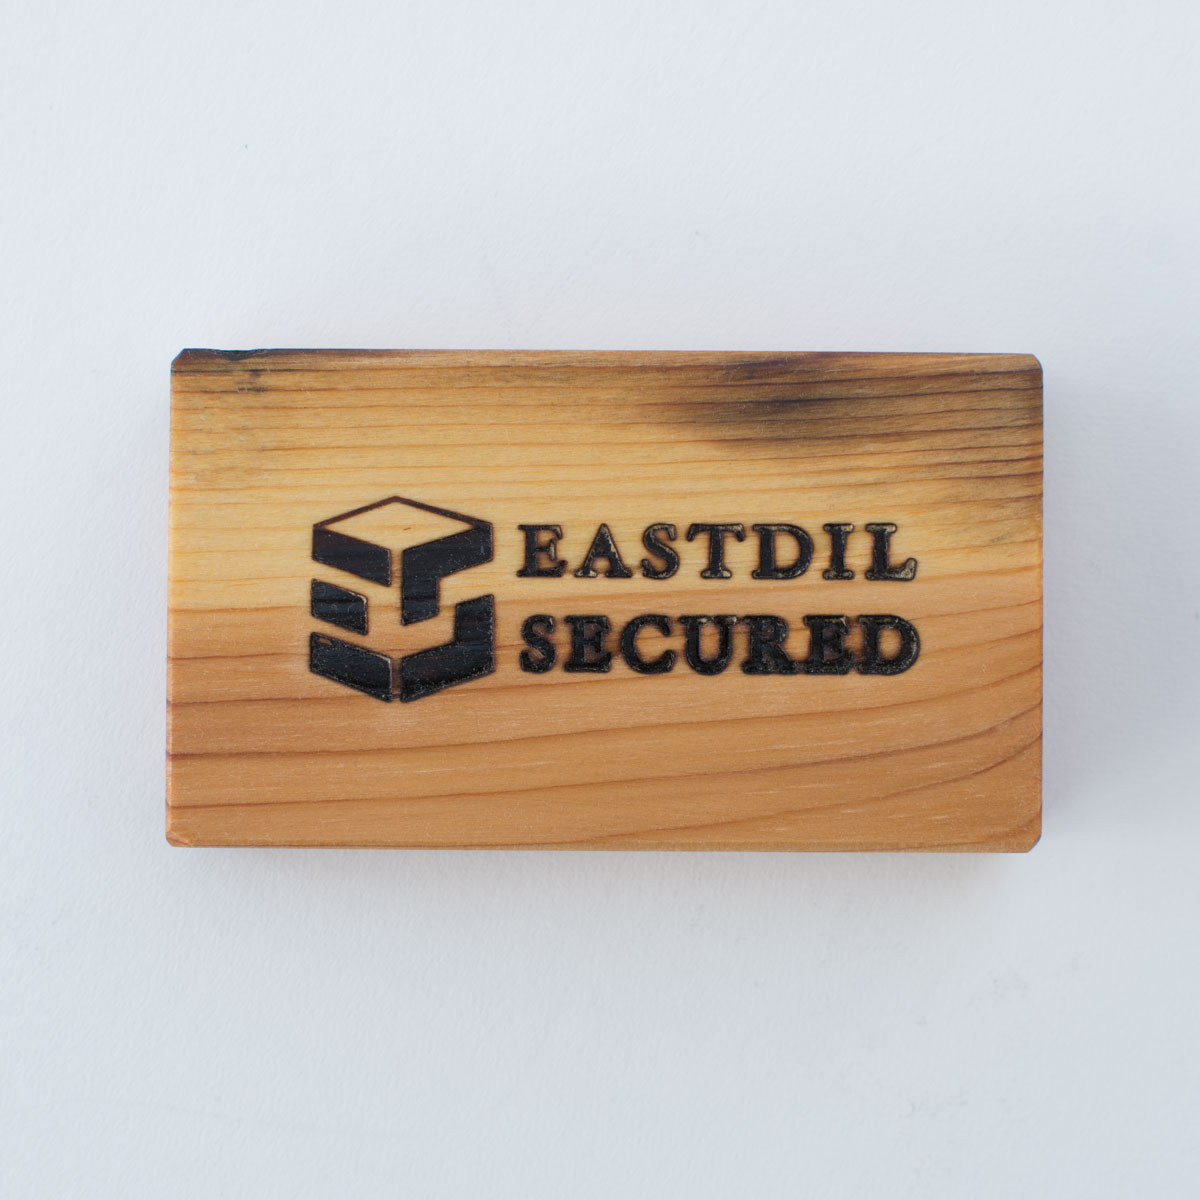 2-branded-card-stand-holstee-1200px.jpg